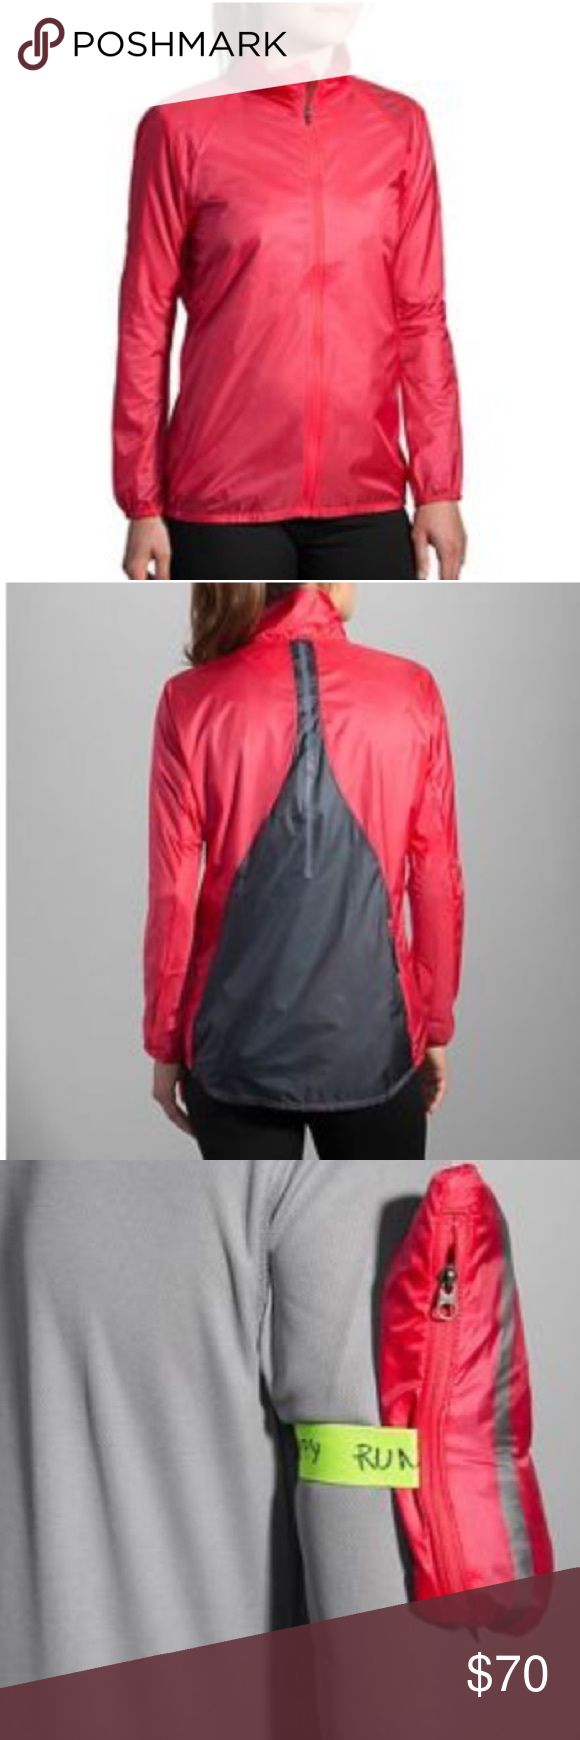 🌸 Brooks LSD Jacket Super lightweight, windproof, water-resistant jacket that can actually pack into itself and be carried hands-free around your arm. You'll get the protection you need, when you need it, complete with a full-zip chin guard and draft flat, plus front and back retro-reflectivity. And when the weather clears, just pack the LSD Jacket away and use the elastic band to comfortably attach it to your arm, no fuss, no muss! XL, loose fit for myself which I enjoy a flow. Worn twice…